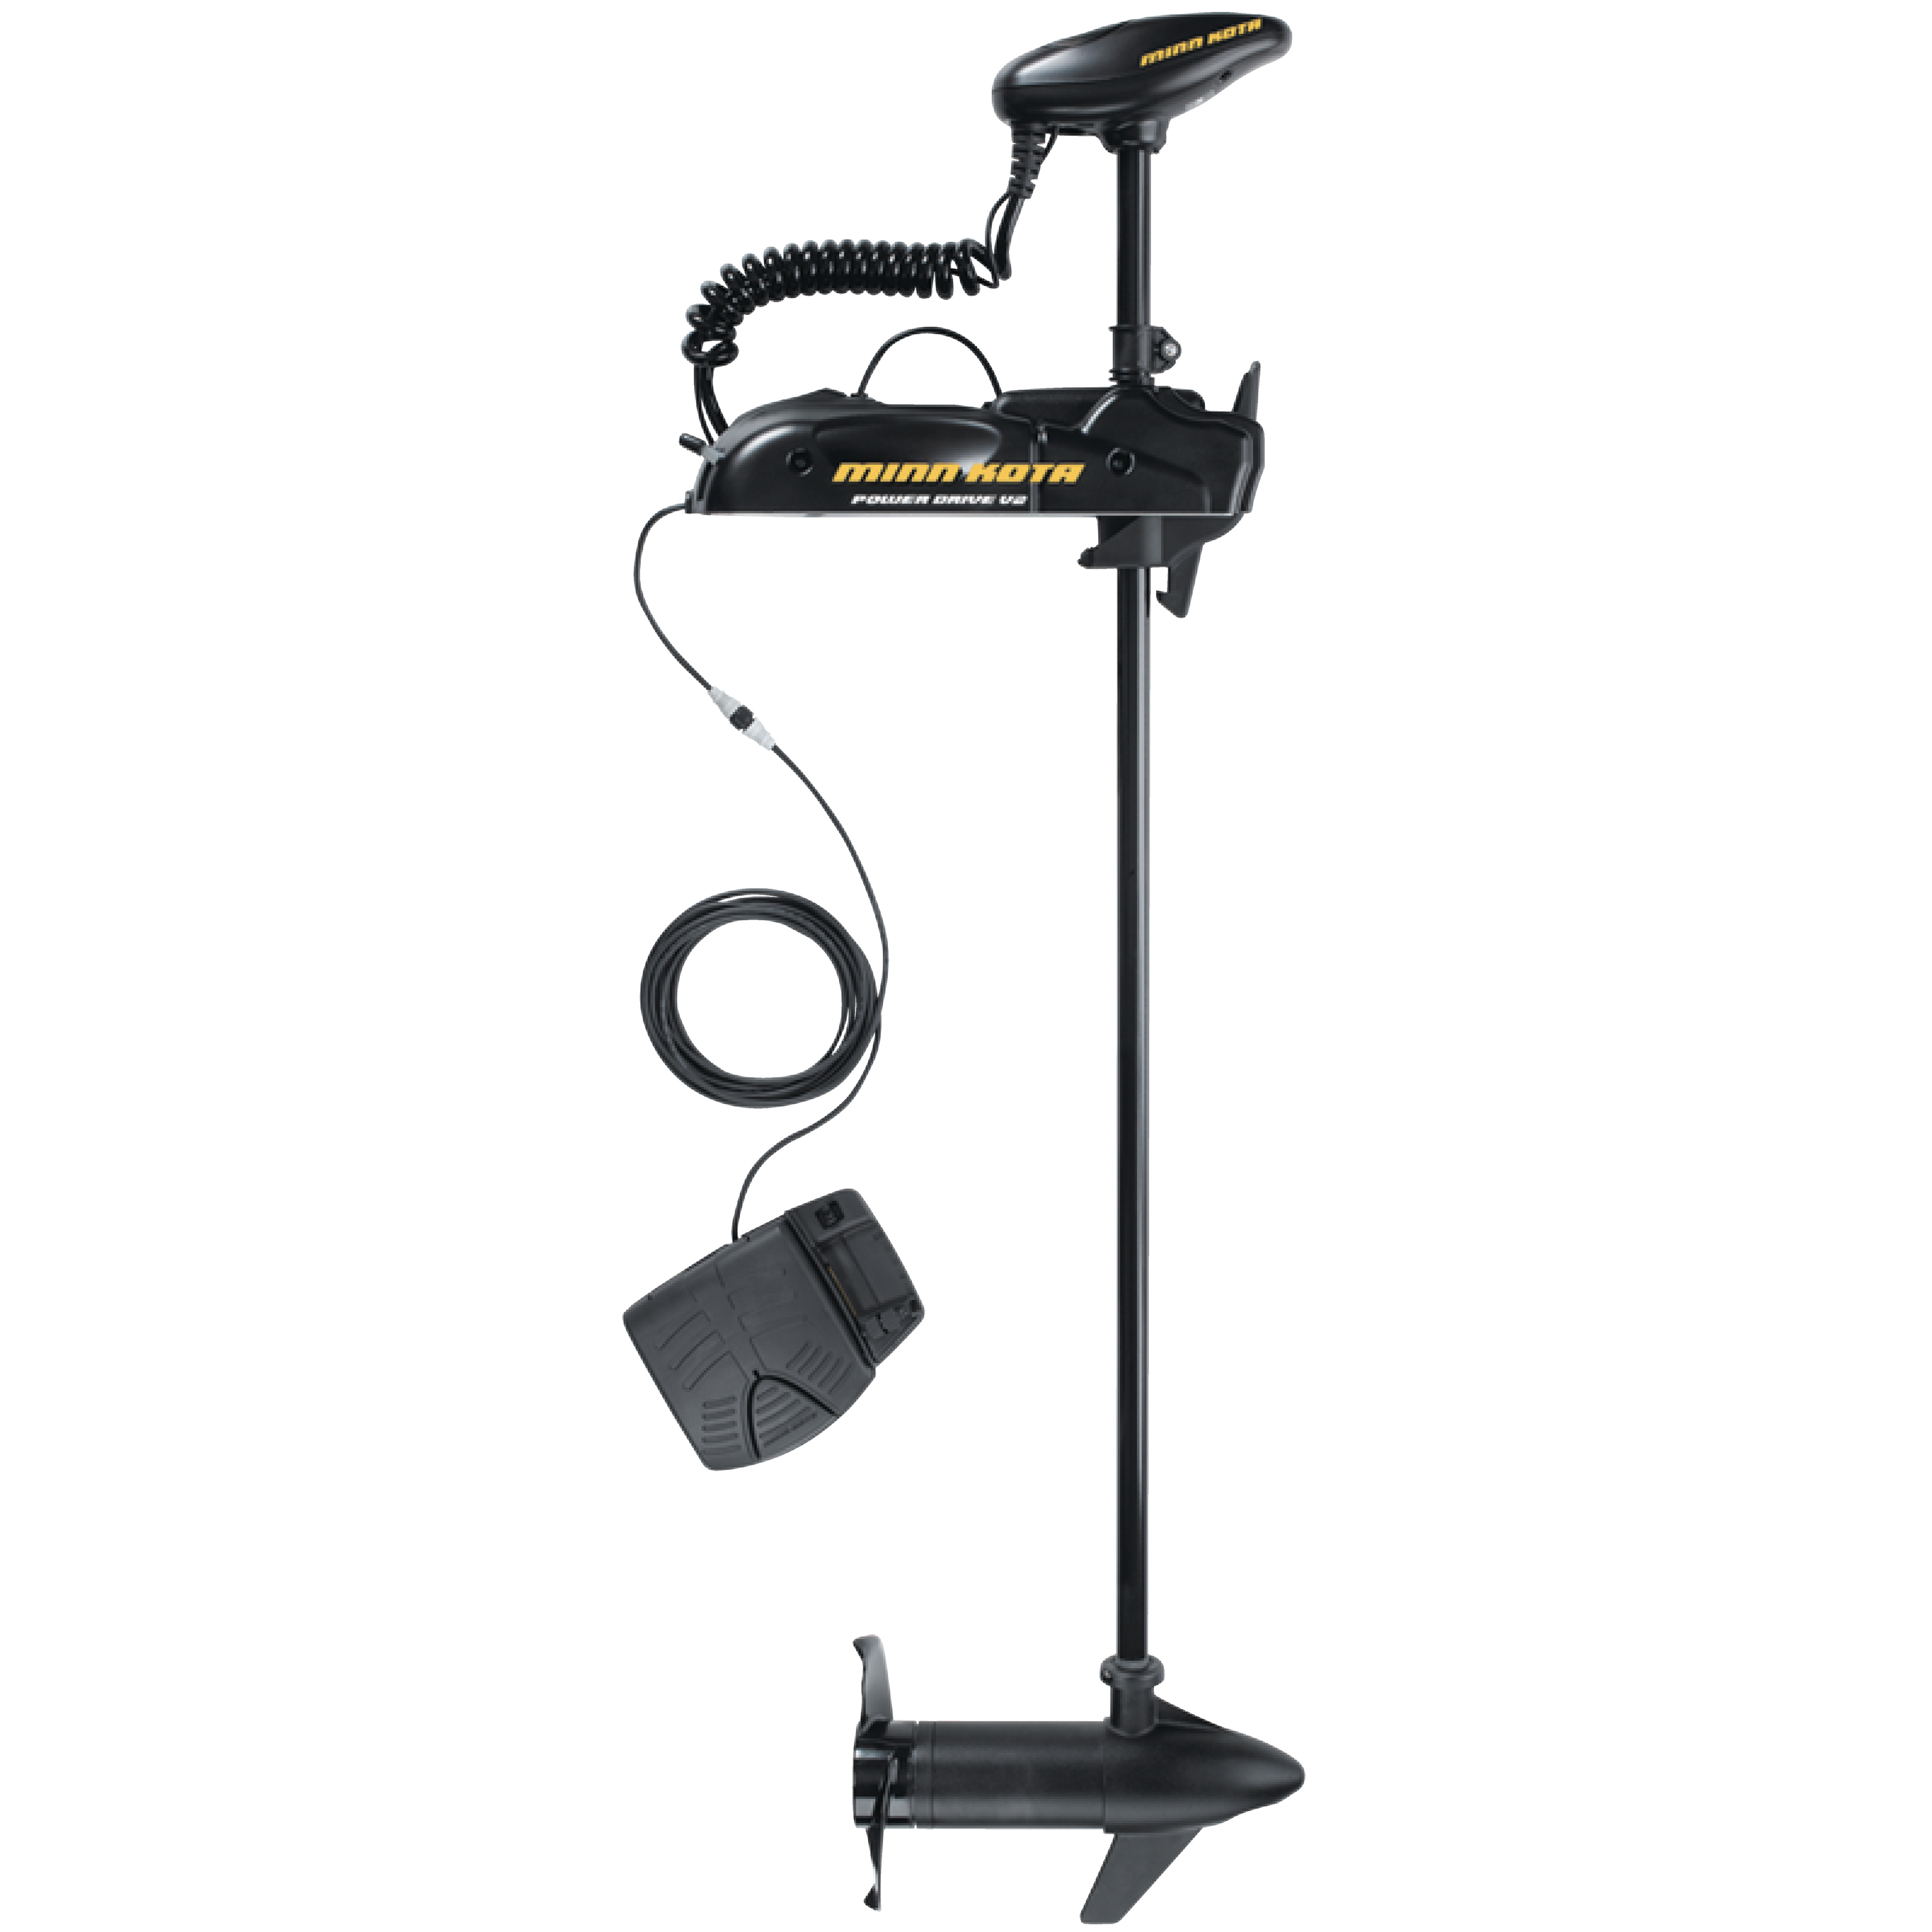 "Minn Kota 1358743 55PD V2 IP Freshwater Bow Mount 12V 48"" Shaft Variable Speed 55 lb. Thrust Trolling Motor with... by Johnson Outdoors"